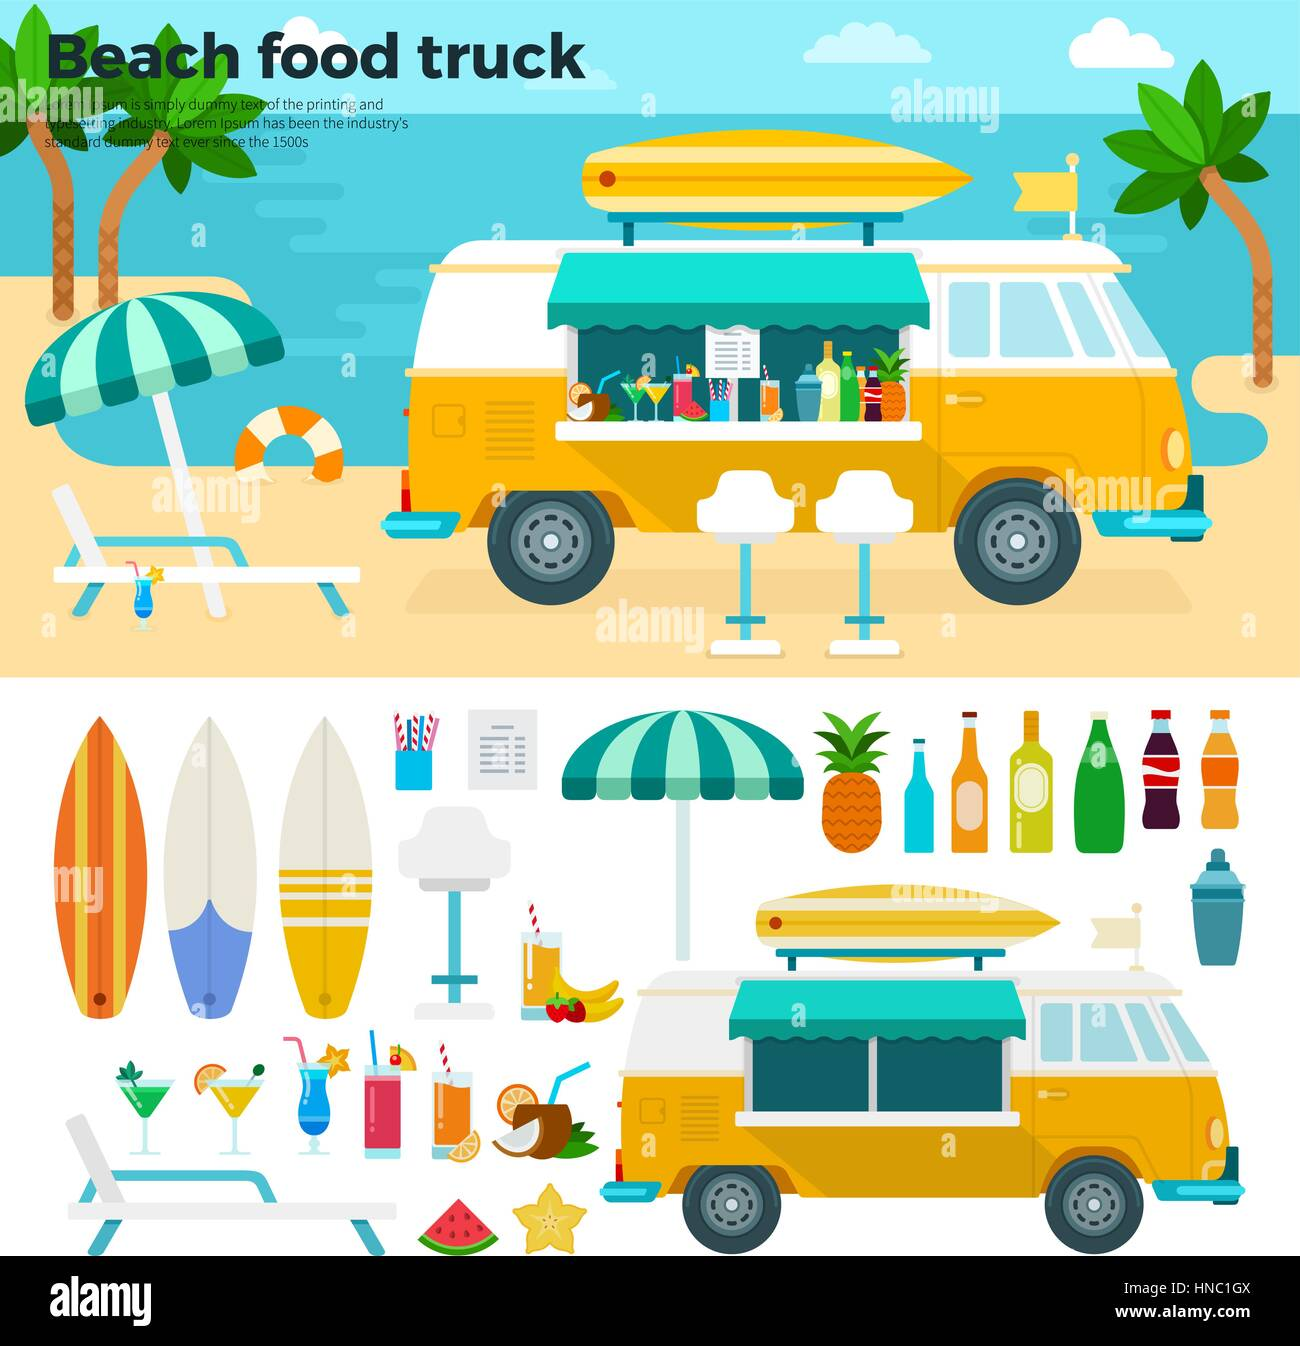 Beach food truck vector flat illustrations. Van with cold beverages and fruits on the summer beach. Hot summer concept. - Stock Vector